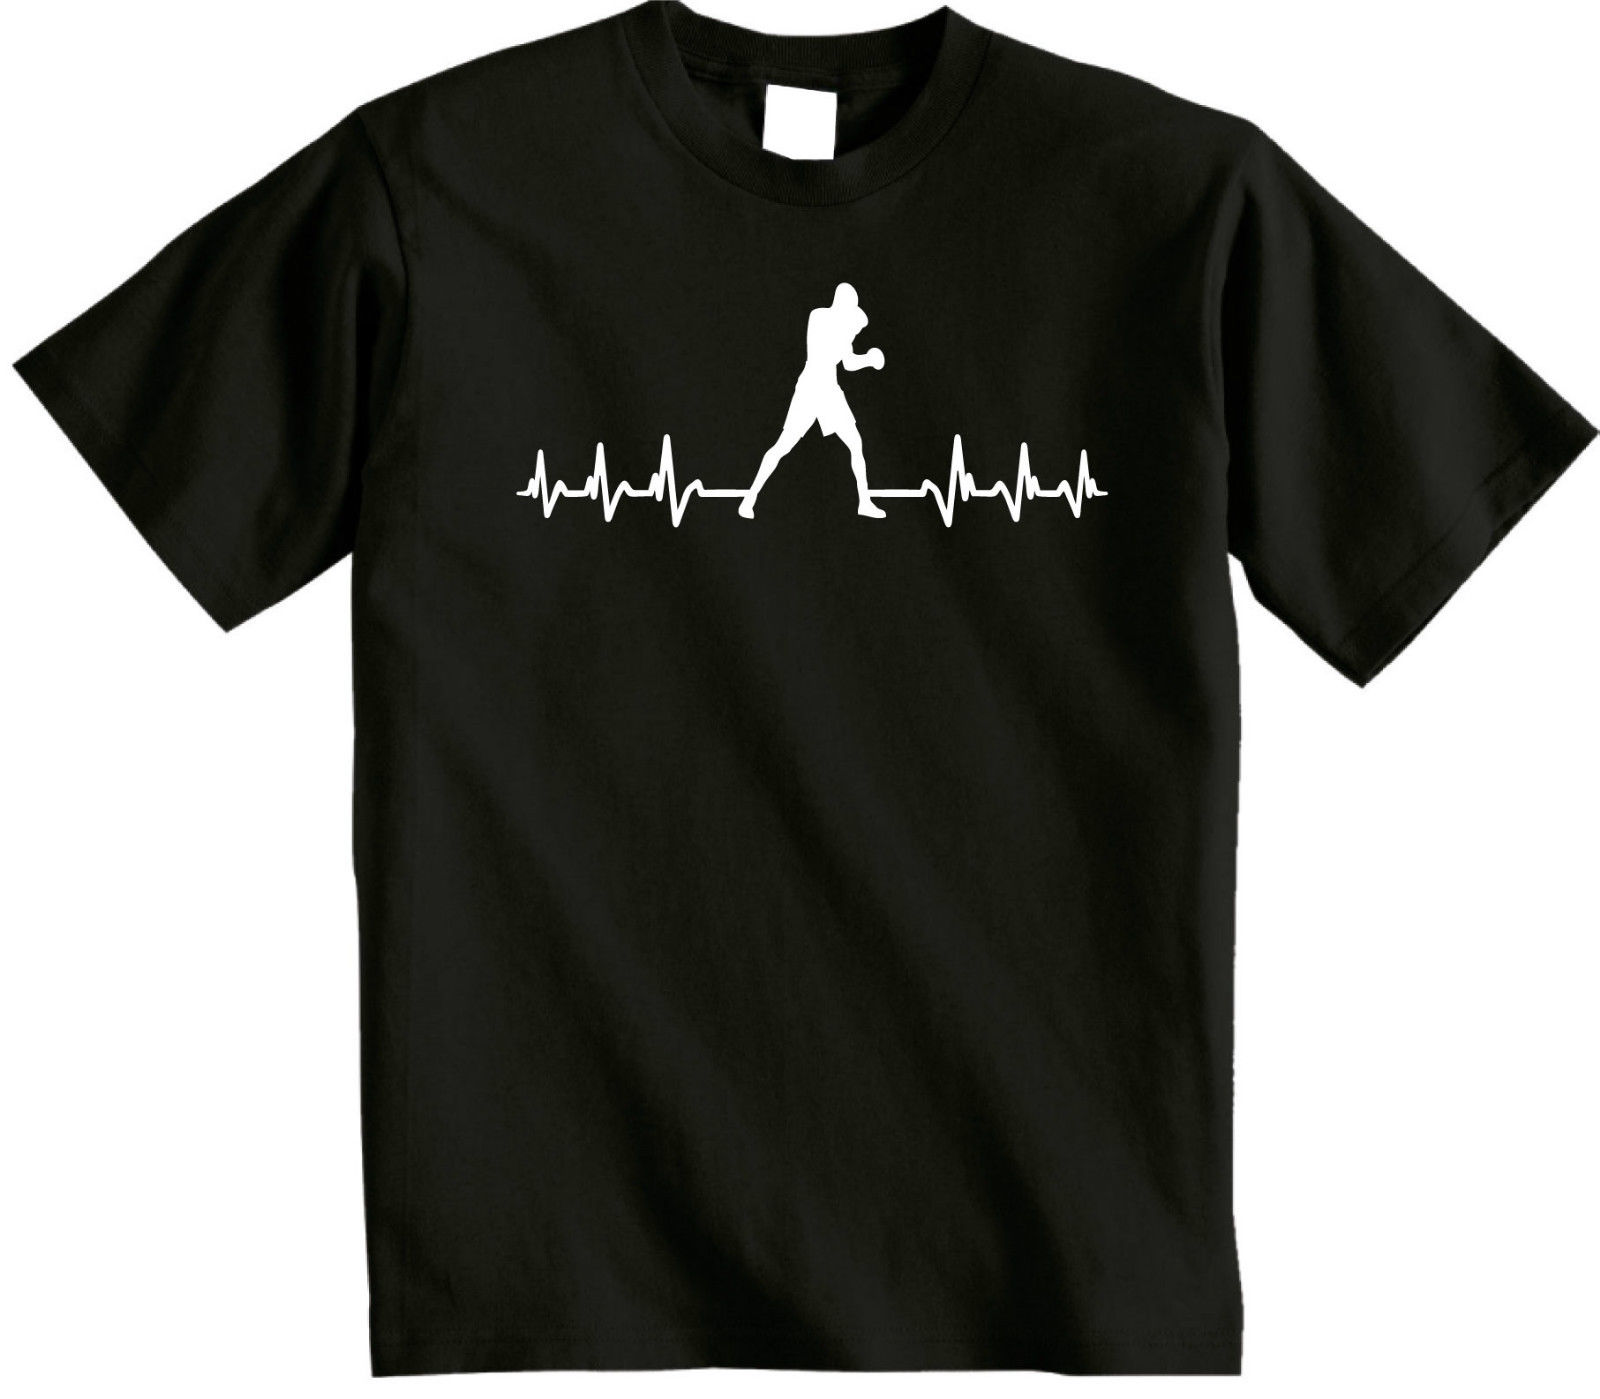 Design your own t shirt cheap uk - It S In My Heartbeat Boxinger T Shirt Free Uk P P Heart Beat Boxer Gymer Tee T